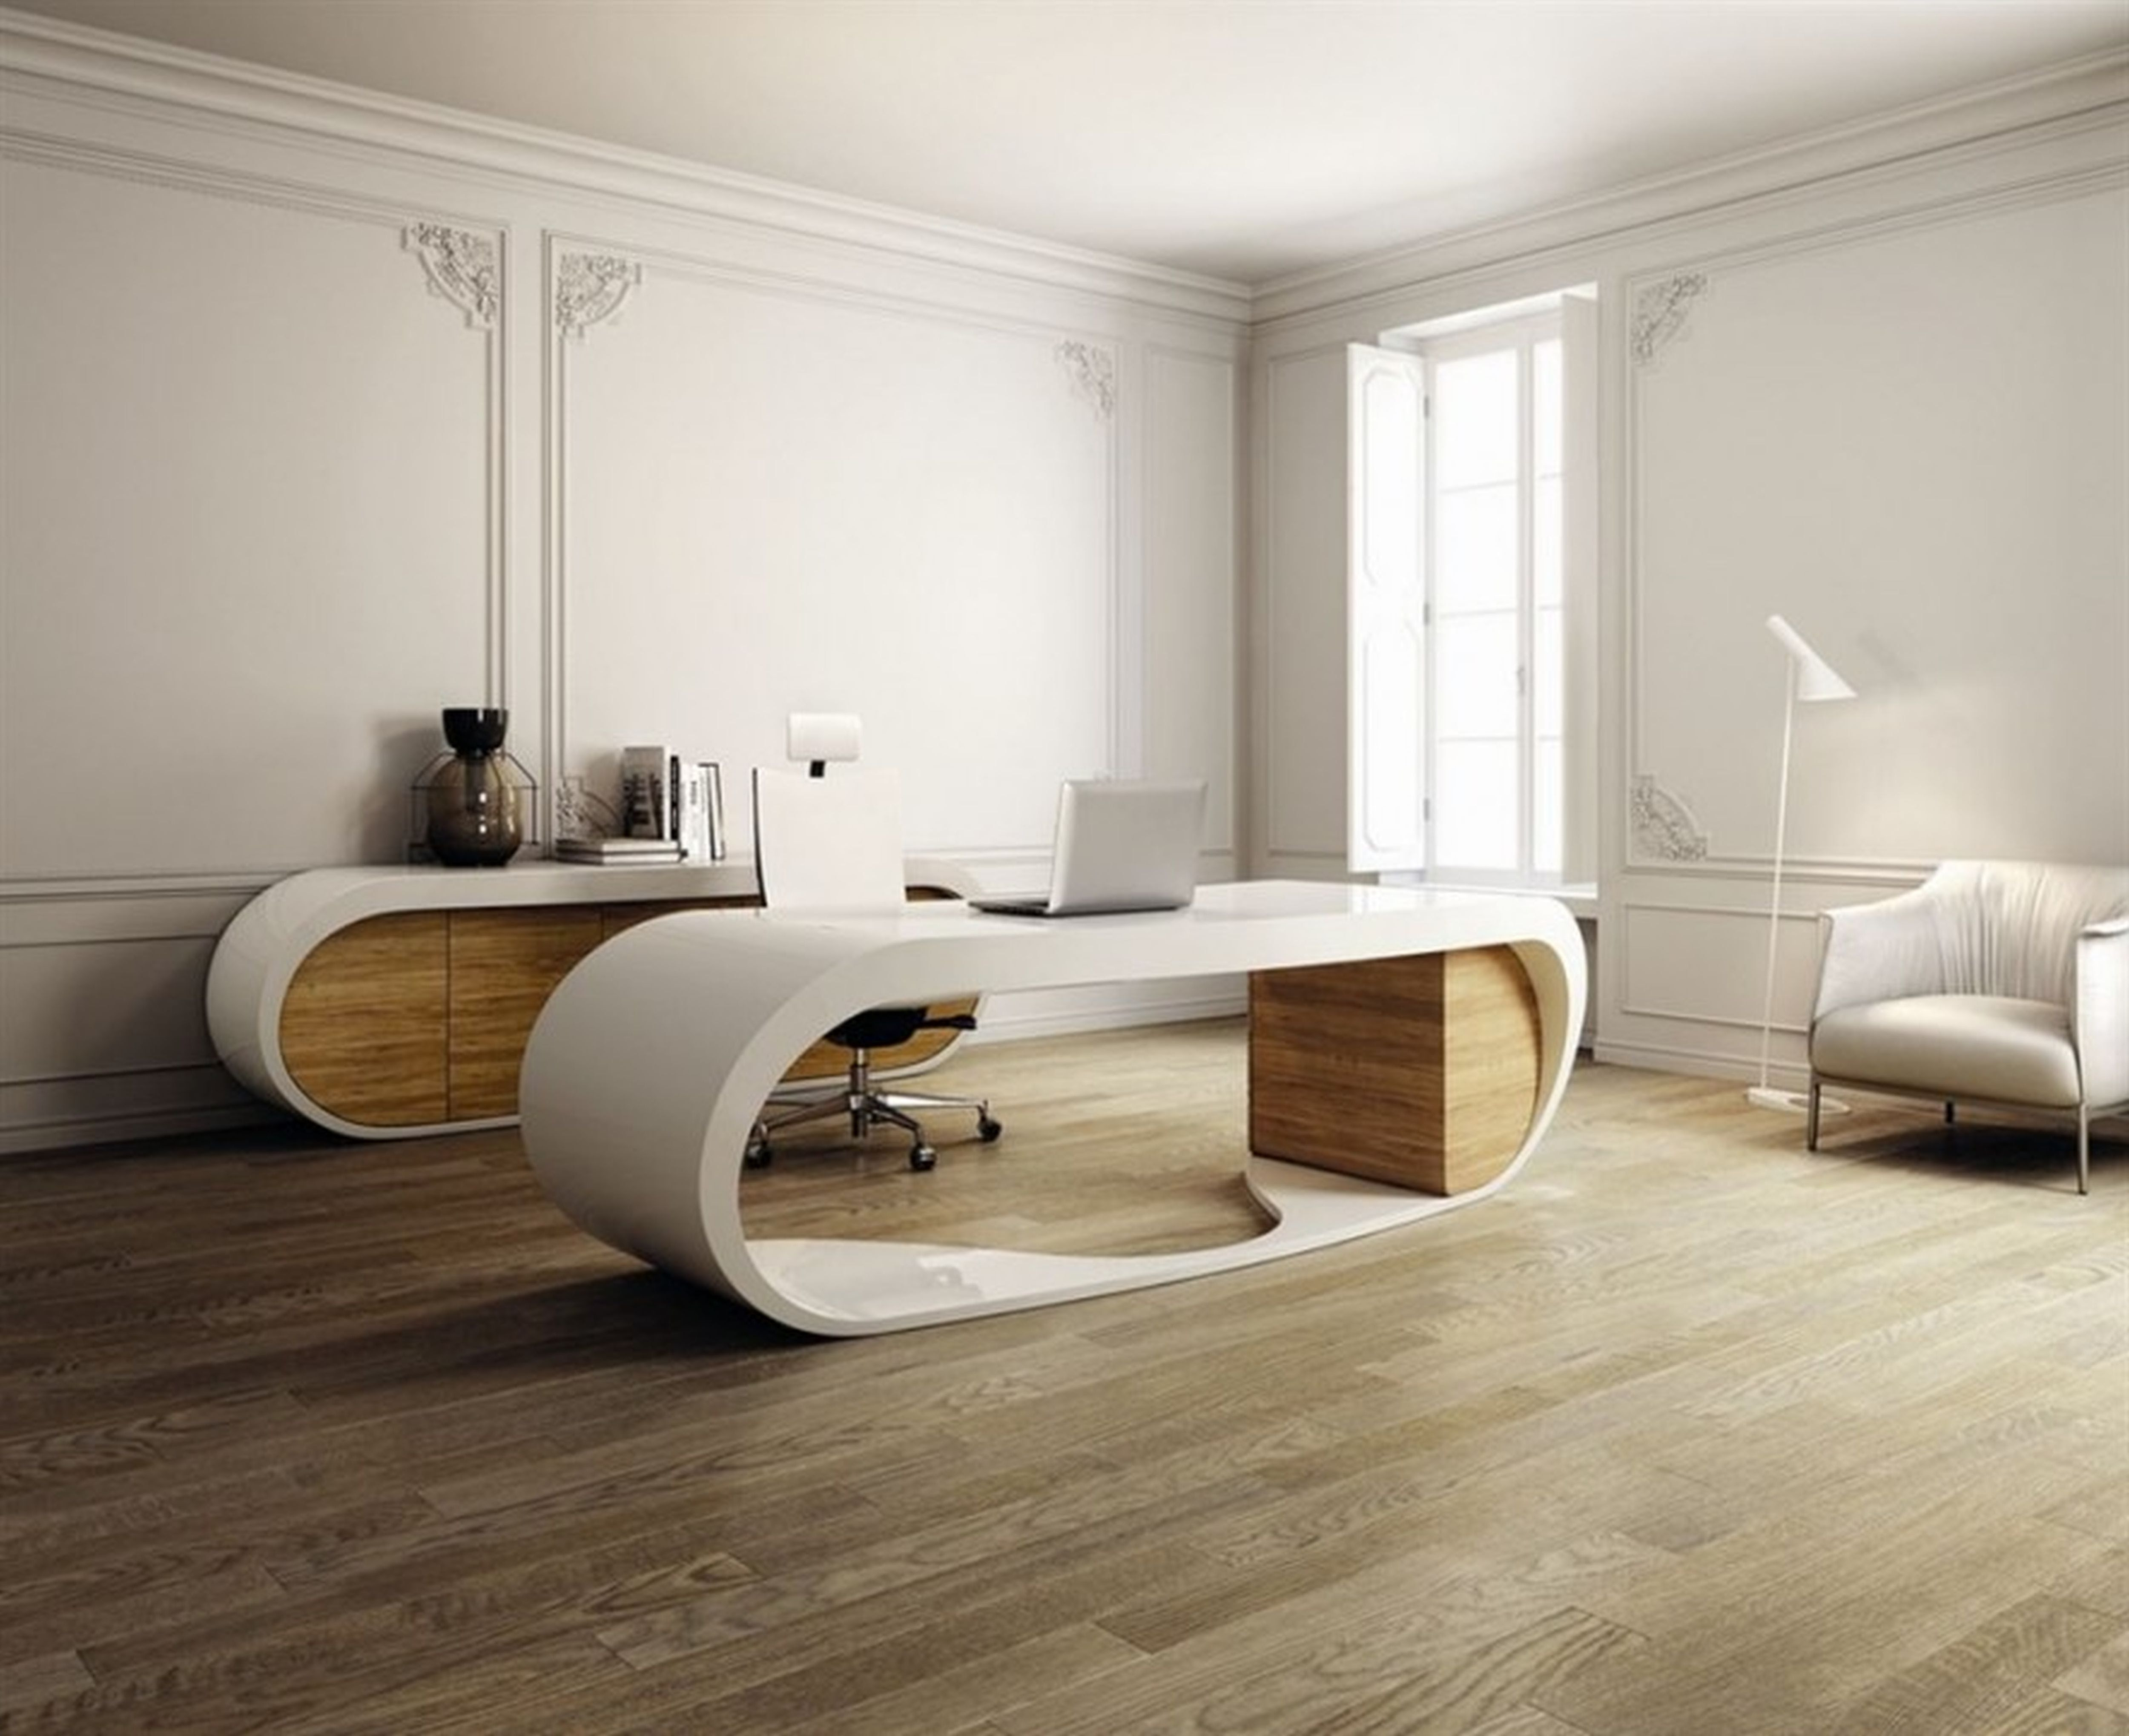 Lovely Modern Home Office Furniture (26)++ Ideas #LMHOF